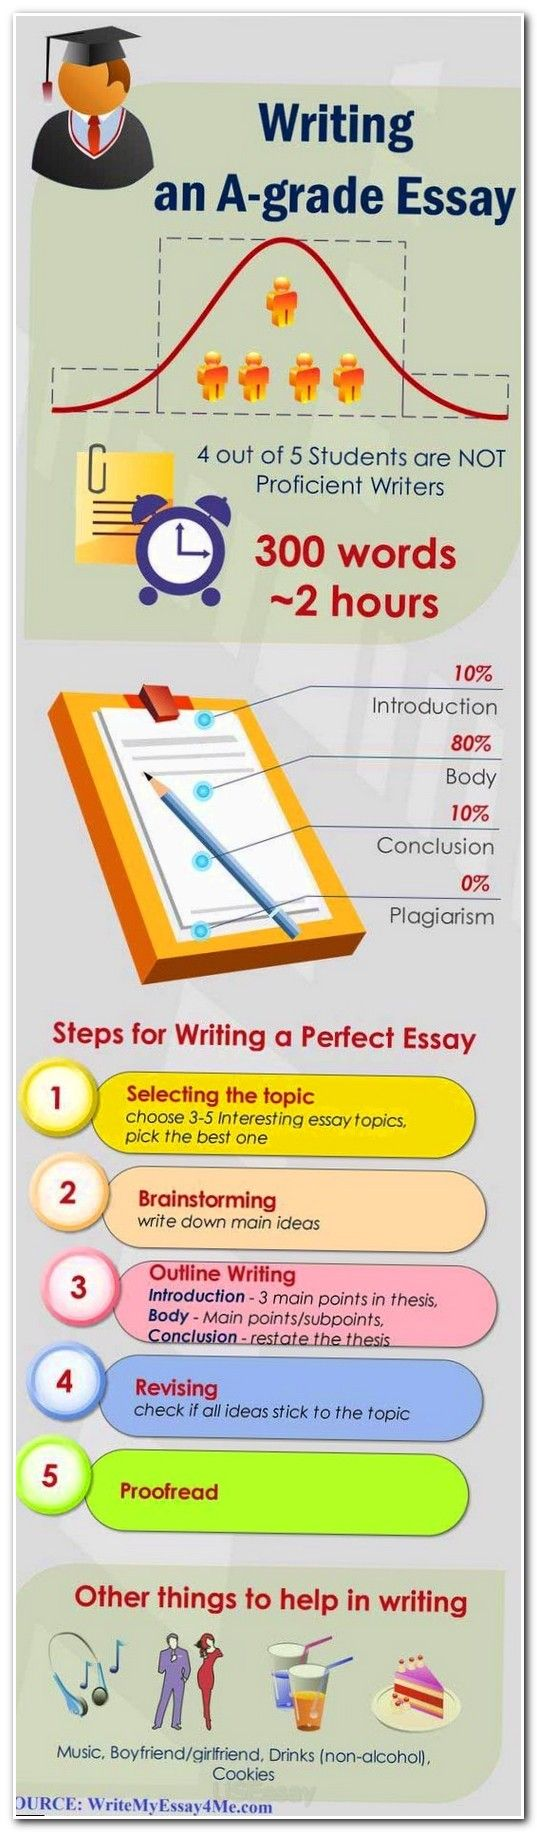 Social Issues Topics For Essays Essay Wrightessay Dissertation Proposal Form Ways To Introduce An Essay  How To Handmaids Tale Essay also Narrative Essay Writing Tips Essay Wrightessay Dissertation Proposal Form Ways To Introduce An  Essays On Gay Marriage